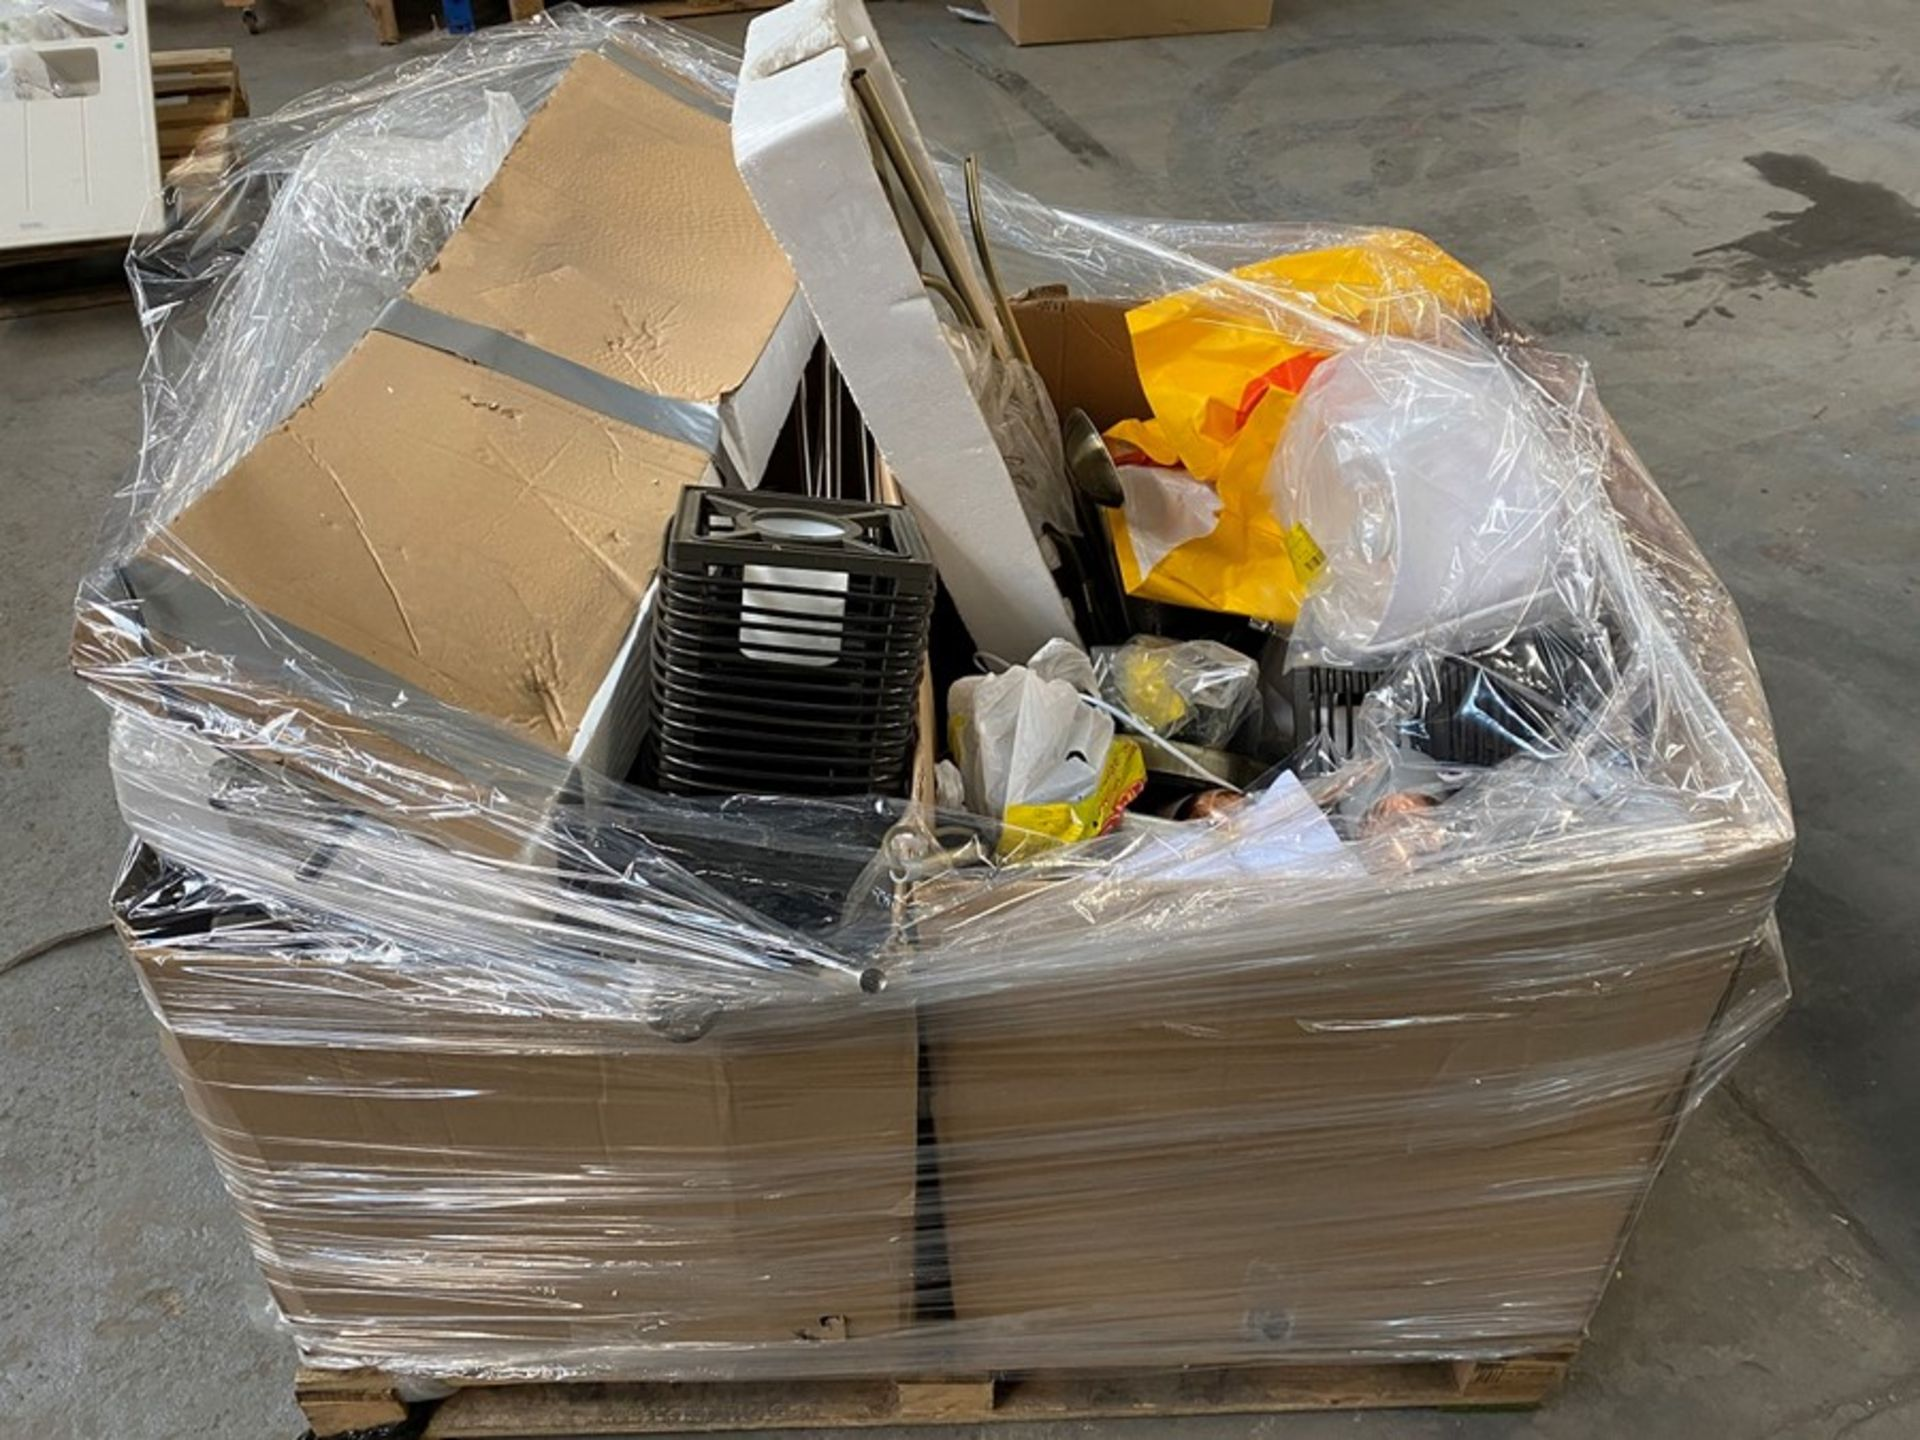 Lot 42 - 1 LOT TO CONTAIN ASSORTED UNTESTED LIGHTS, LAMPS AND LAMPSHADES (PUBLIC VIEWING AVAILABLE)